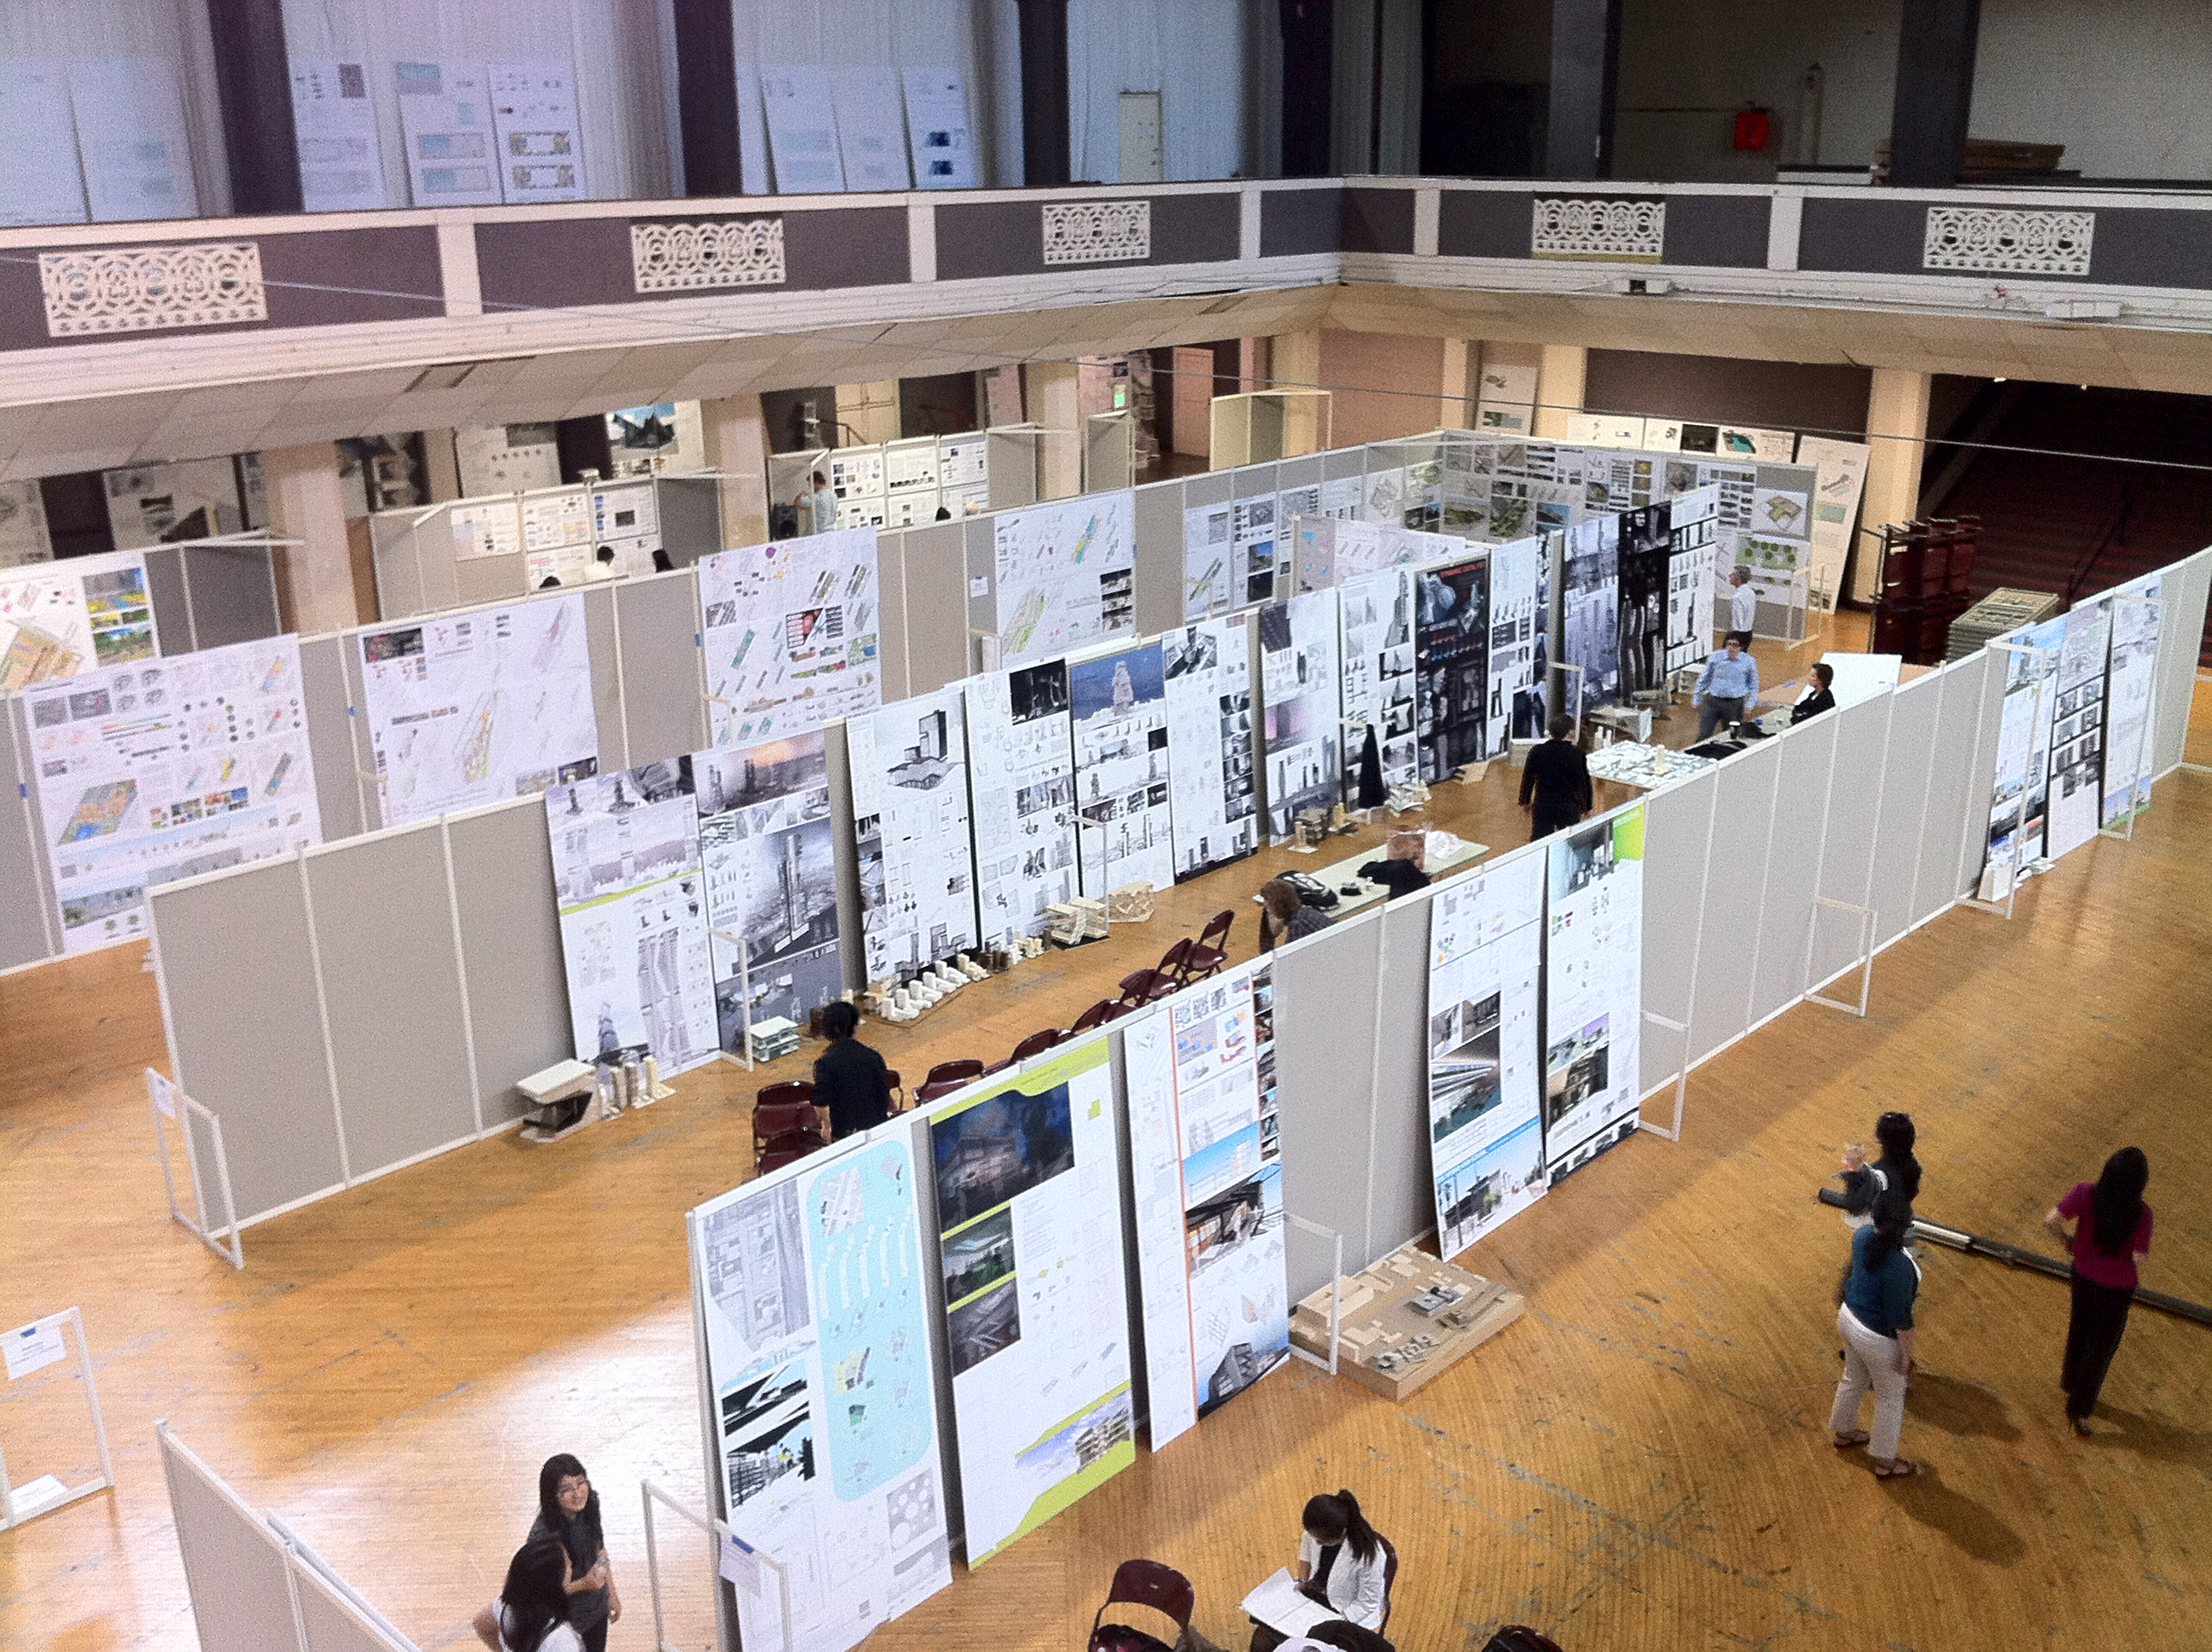 Architecture students to receive final reviews at exhibition